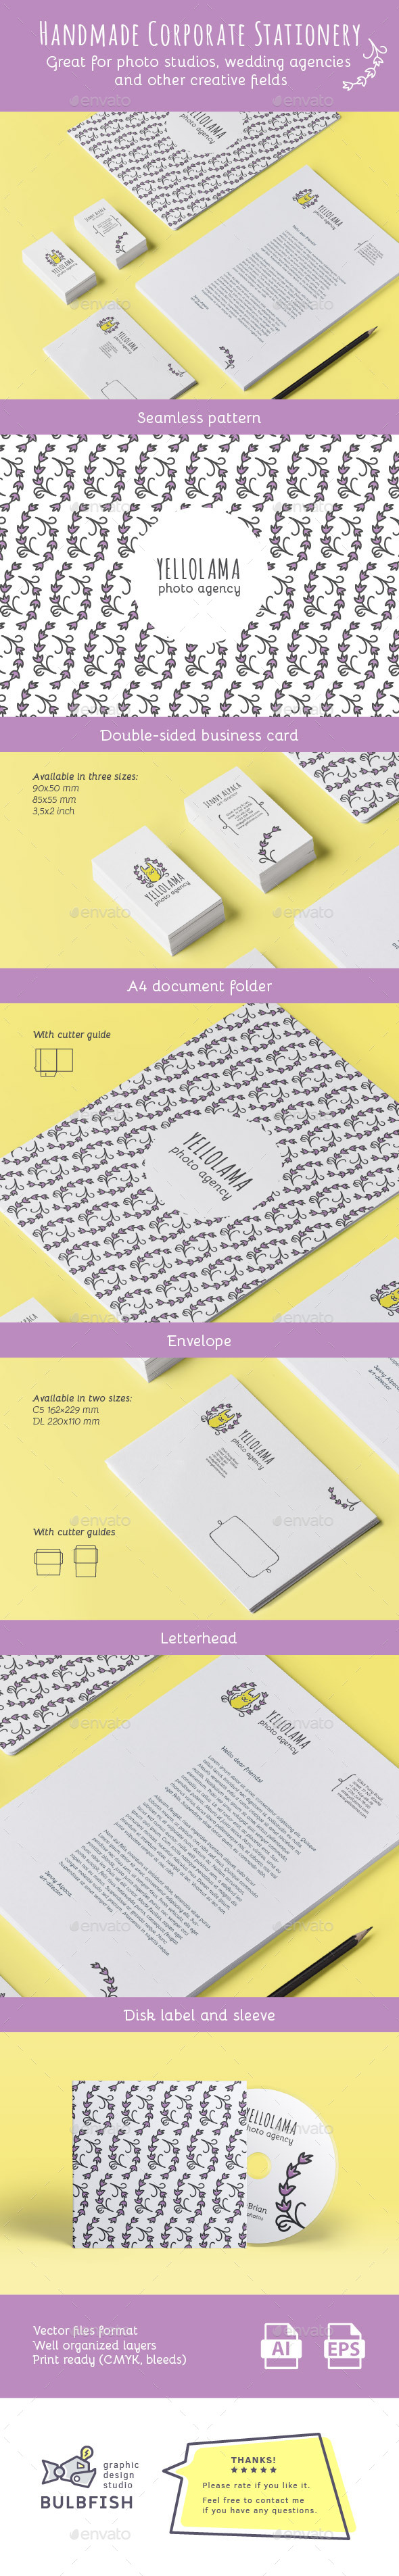 Handmade Corporate Stationery - Stationery Print Templates